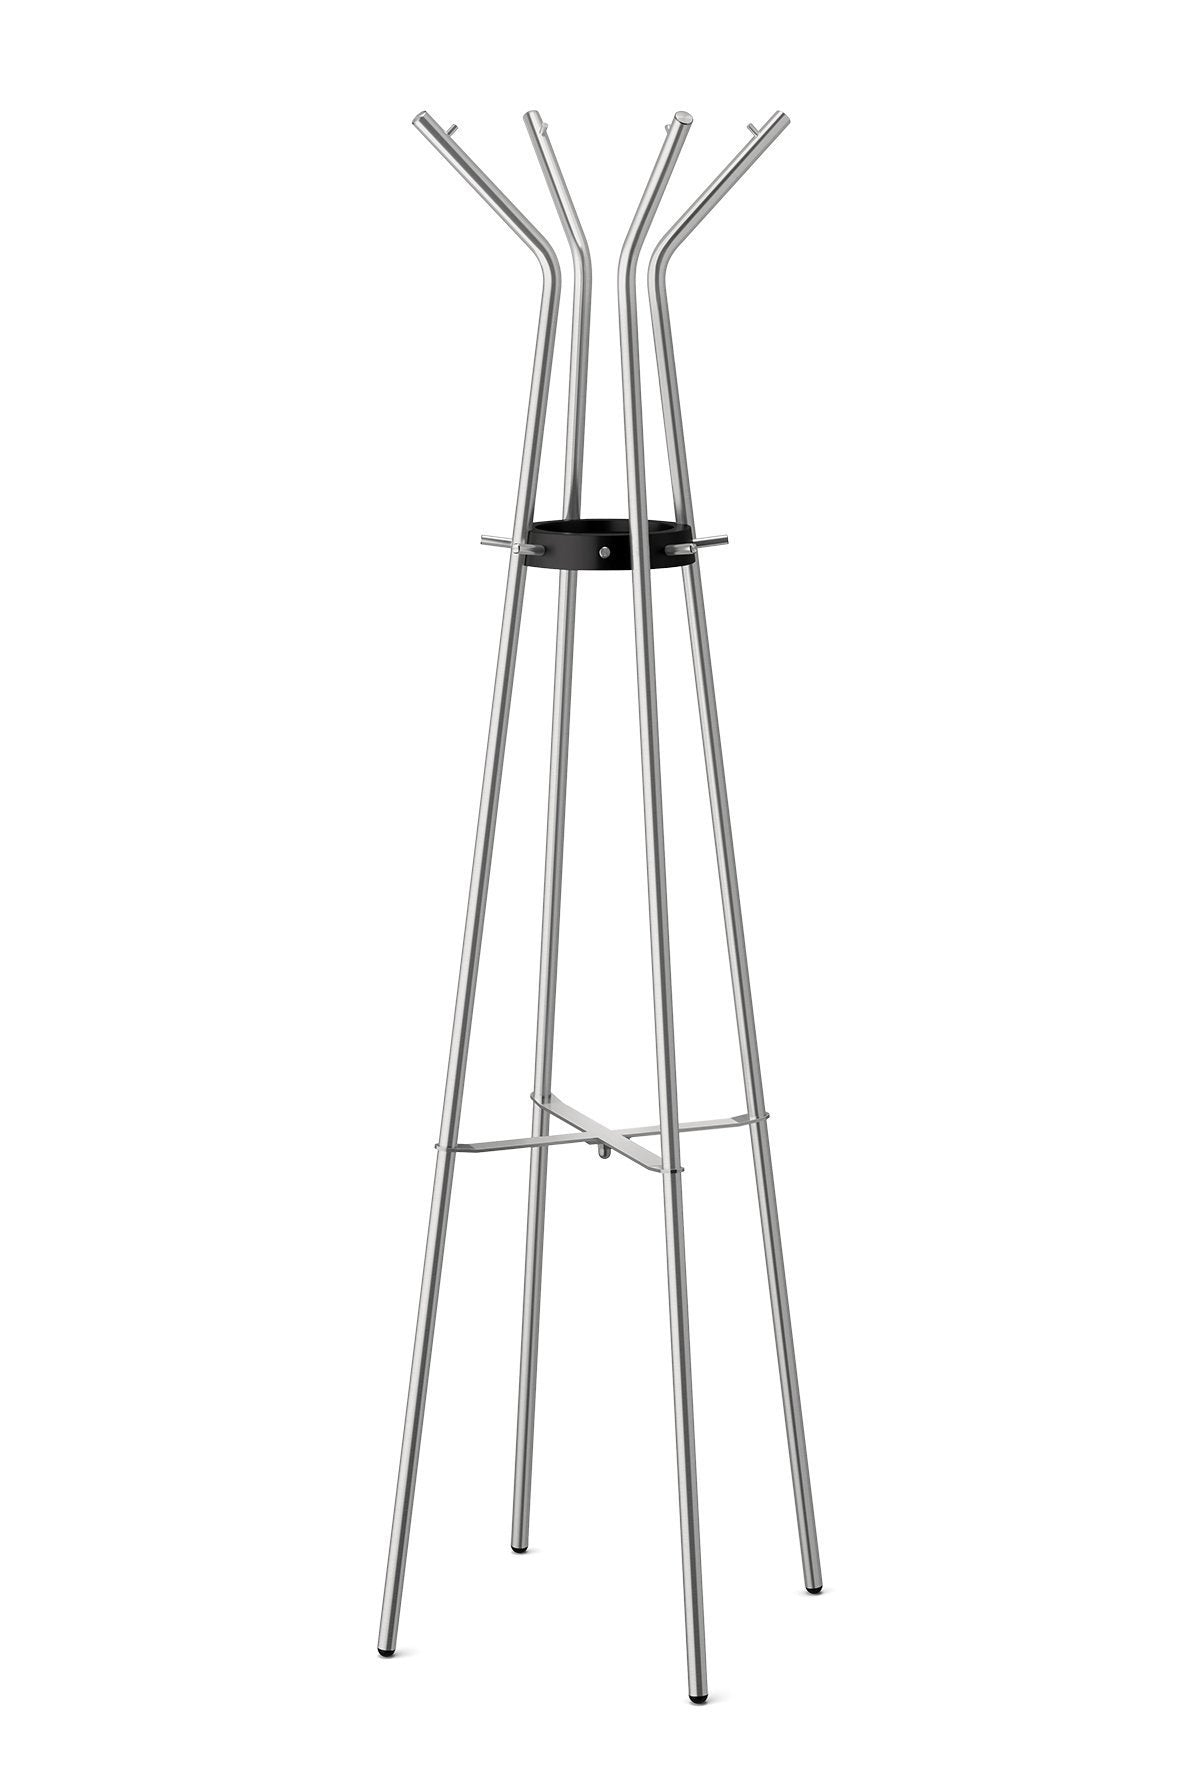 Buy zack stainless steel teros matt finished coat stand 21 26 x 68 90 silver metallic